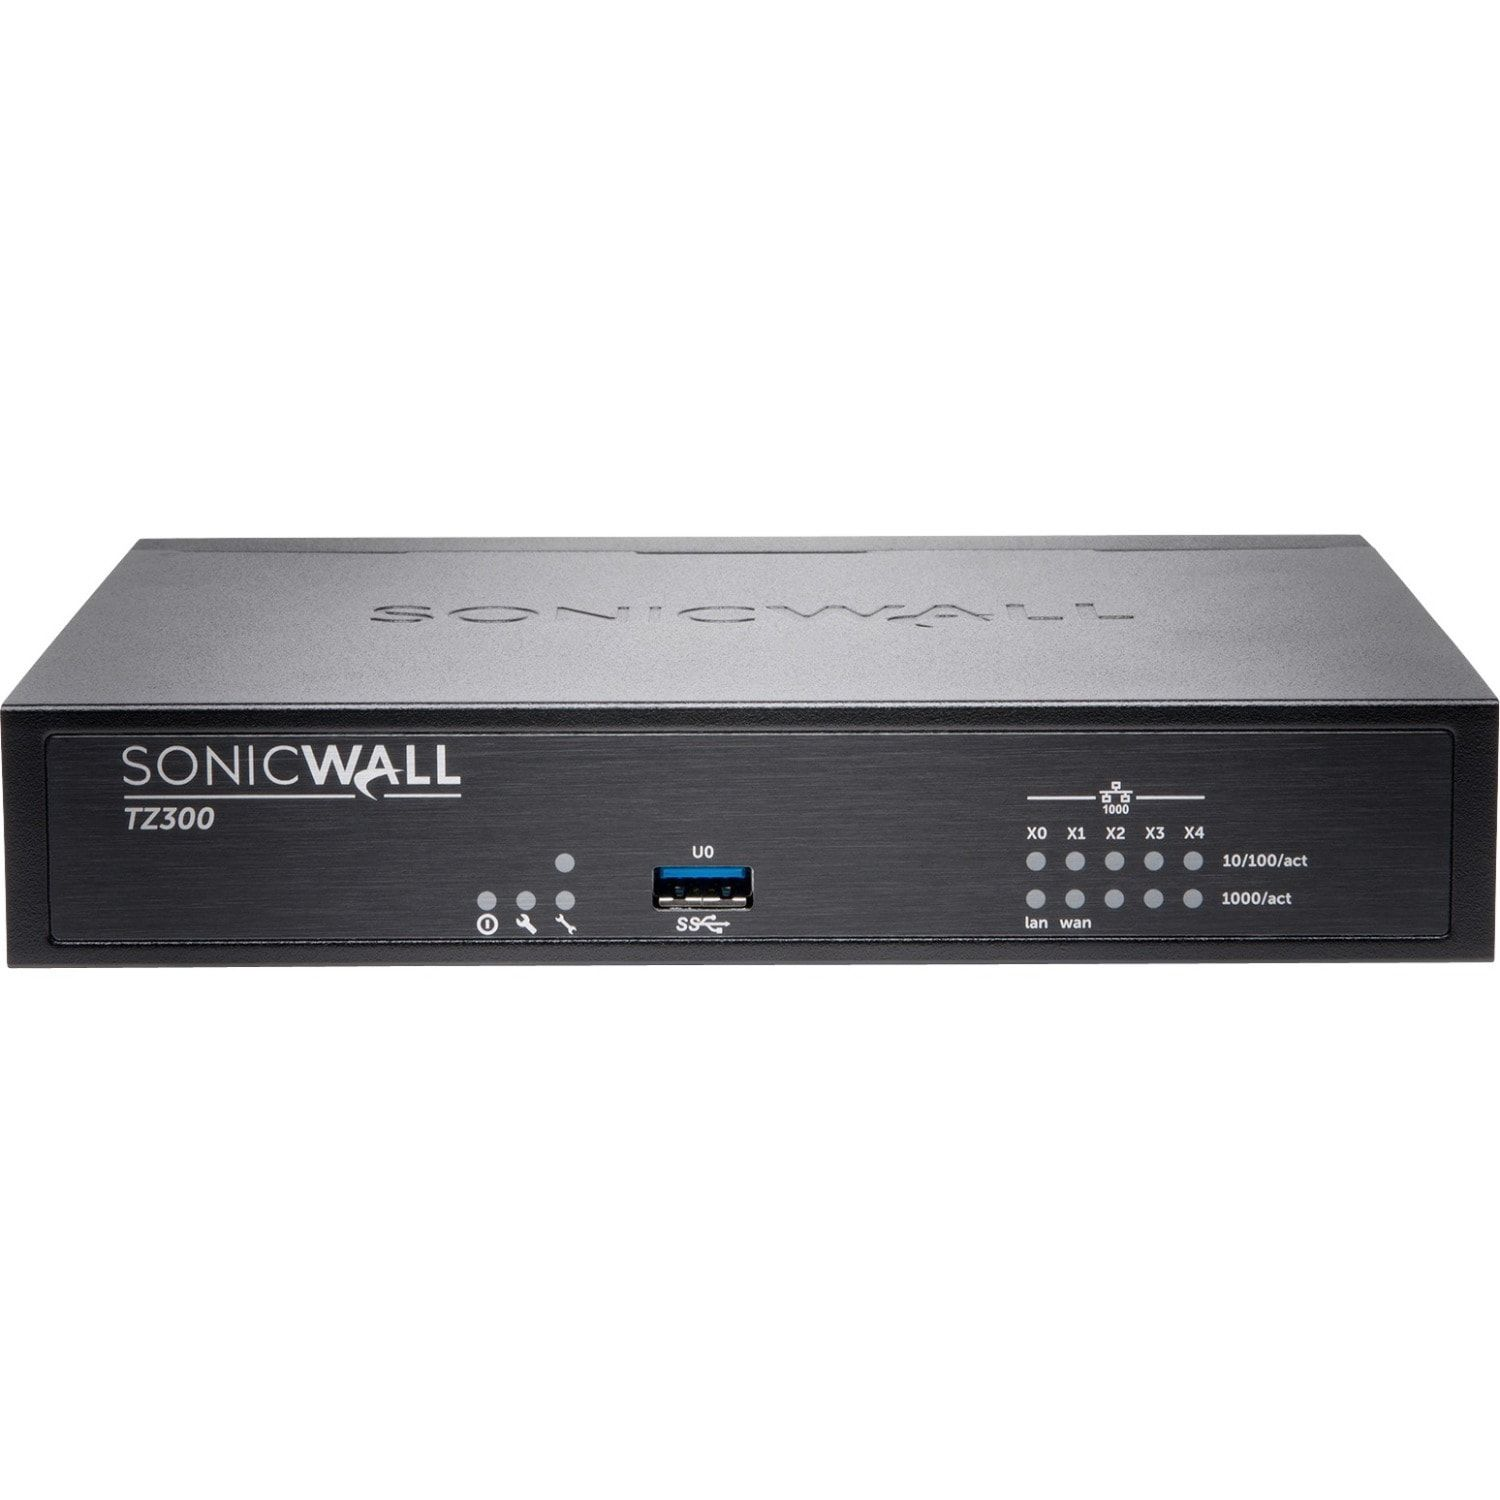 sonicwall tz300 network security firewall appliance 01 on sonic wall id=55553